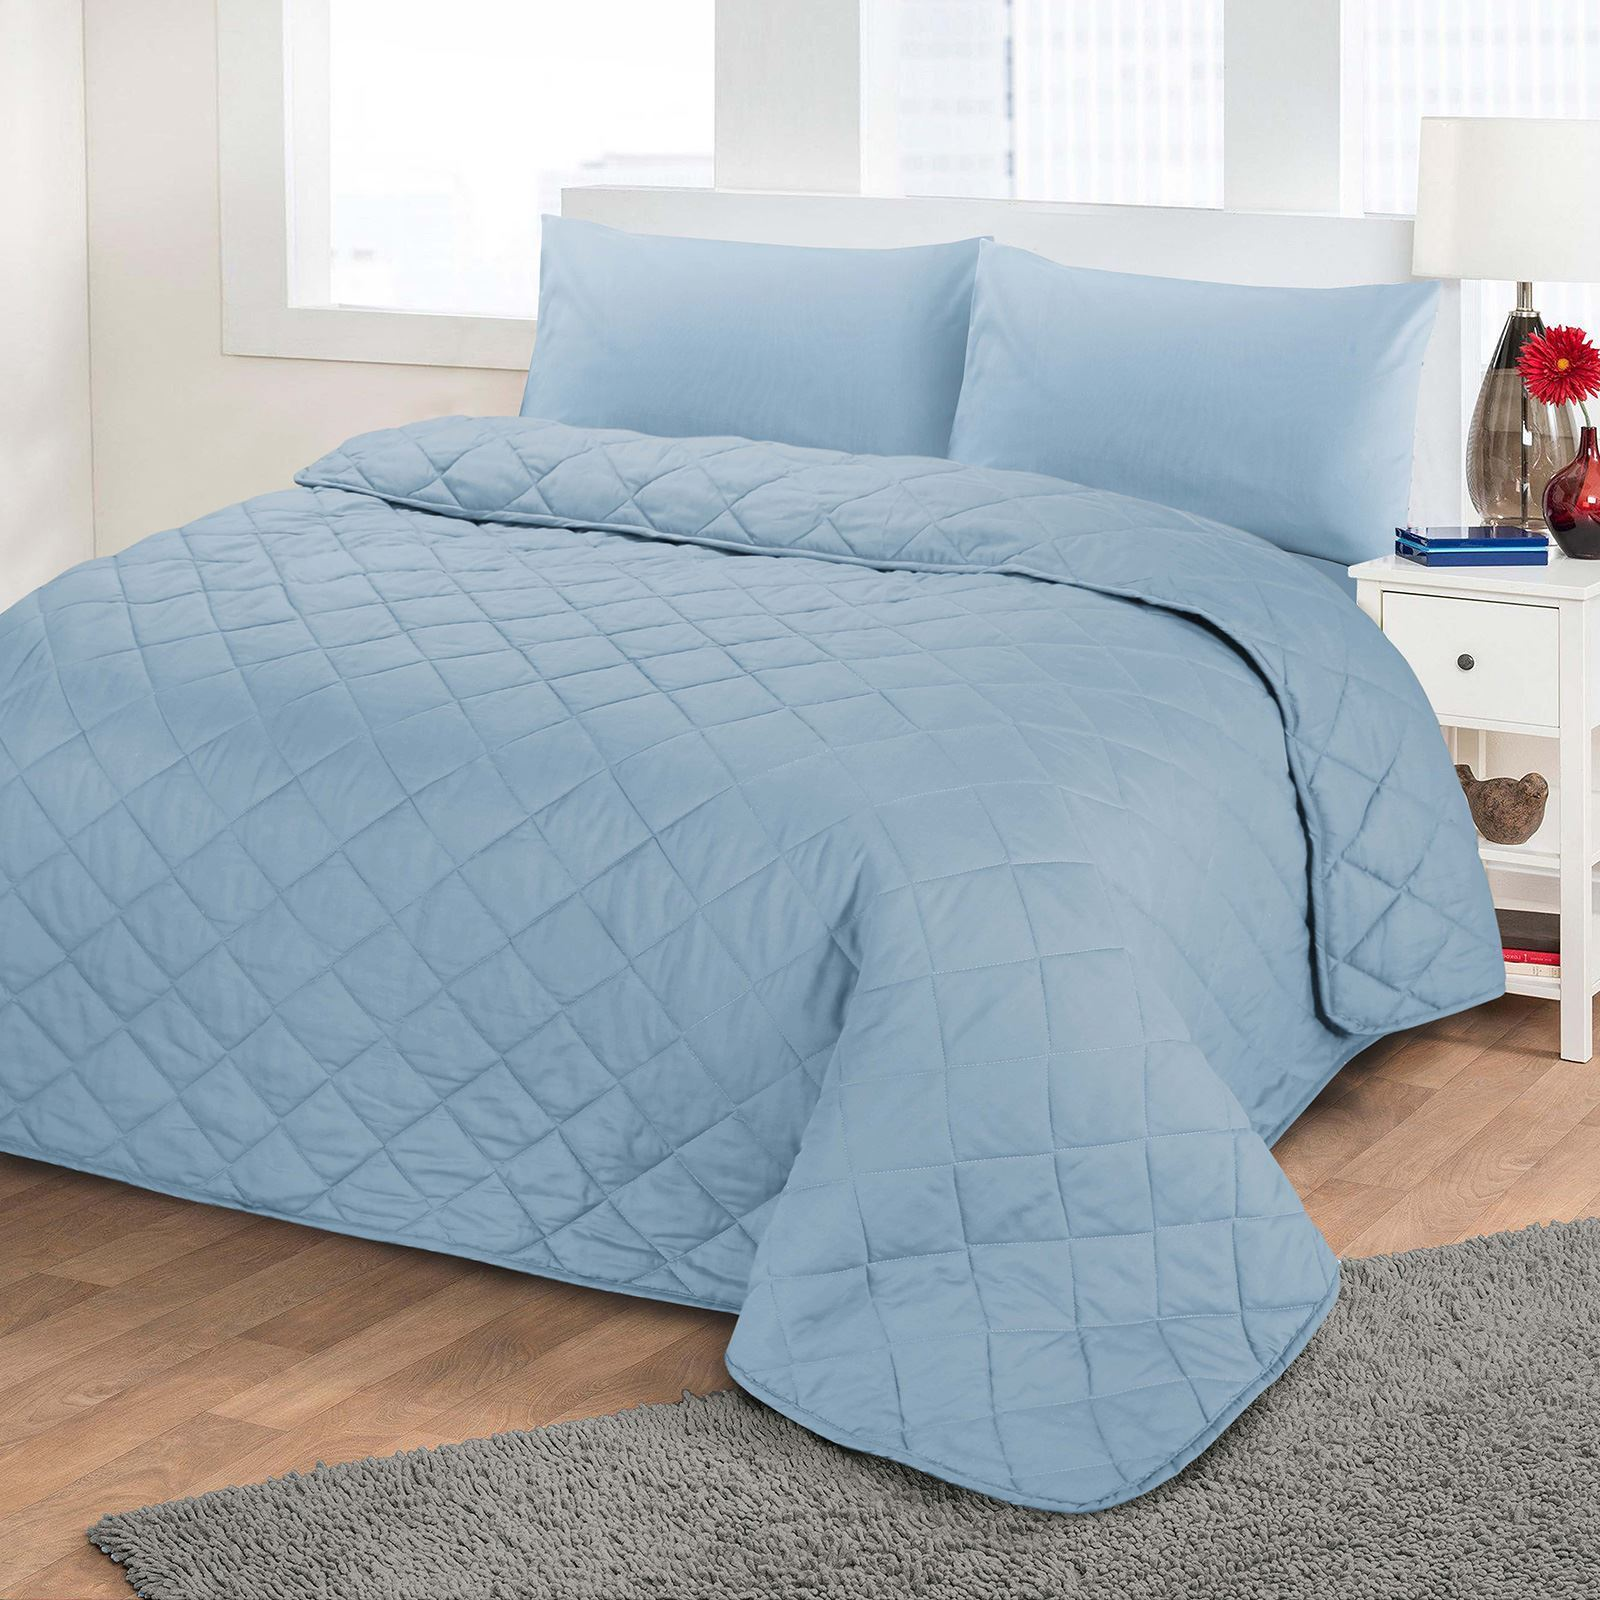 Quilted bedspread on the bed: especially the choice and tailoring do-it-yourself 10